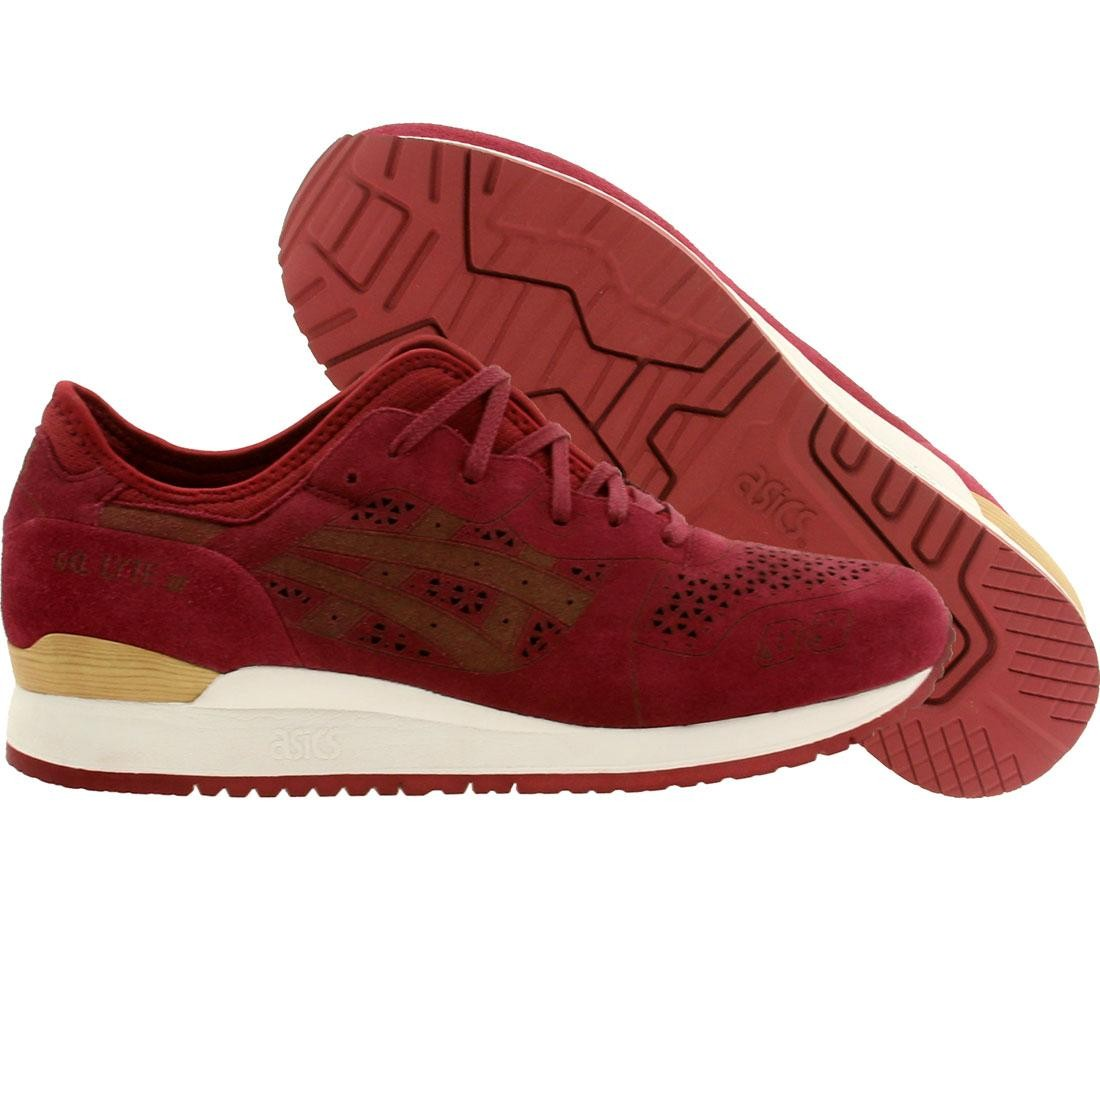 Asics Tiger Men Gel-Lyte III - Lasercut (burgundy)